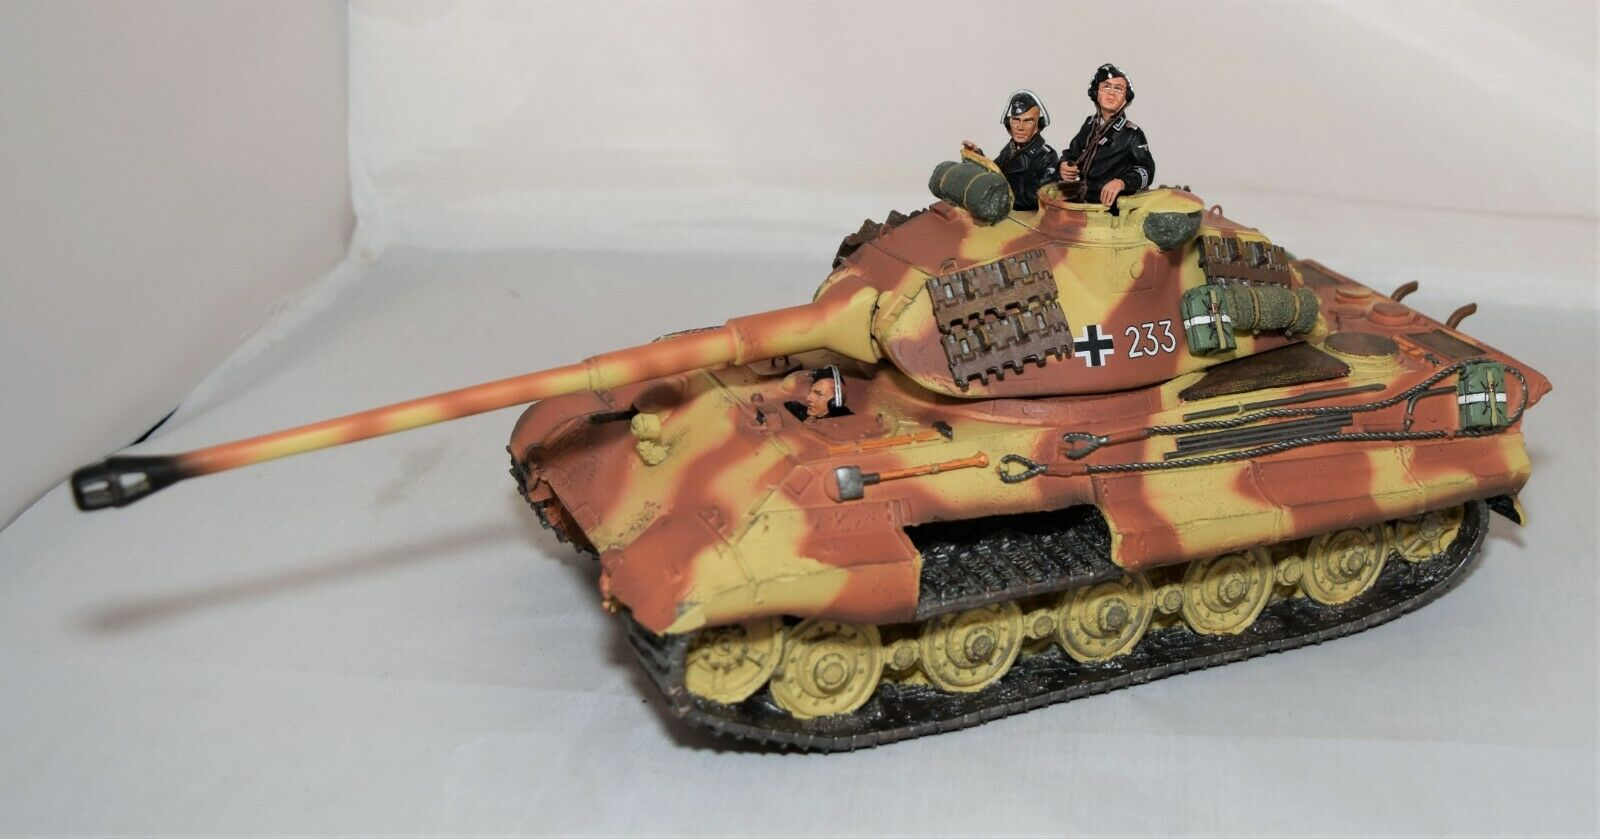 KING AND COUNTRY KING TIGER TANK & CREW - WWII GERMAN FORCES 1 30 SCALE